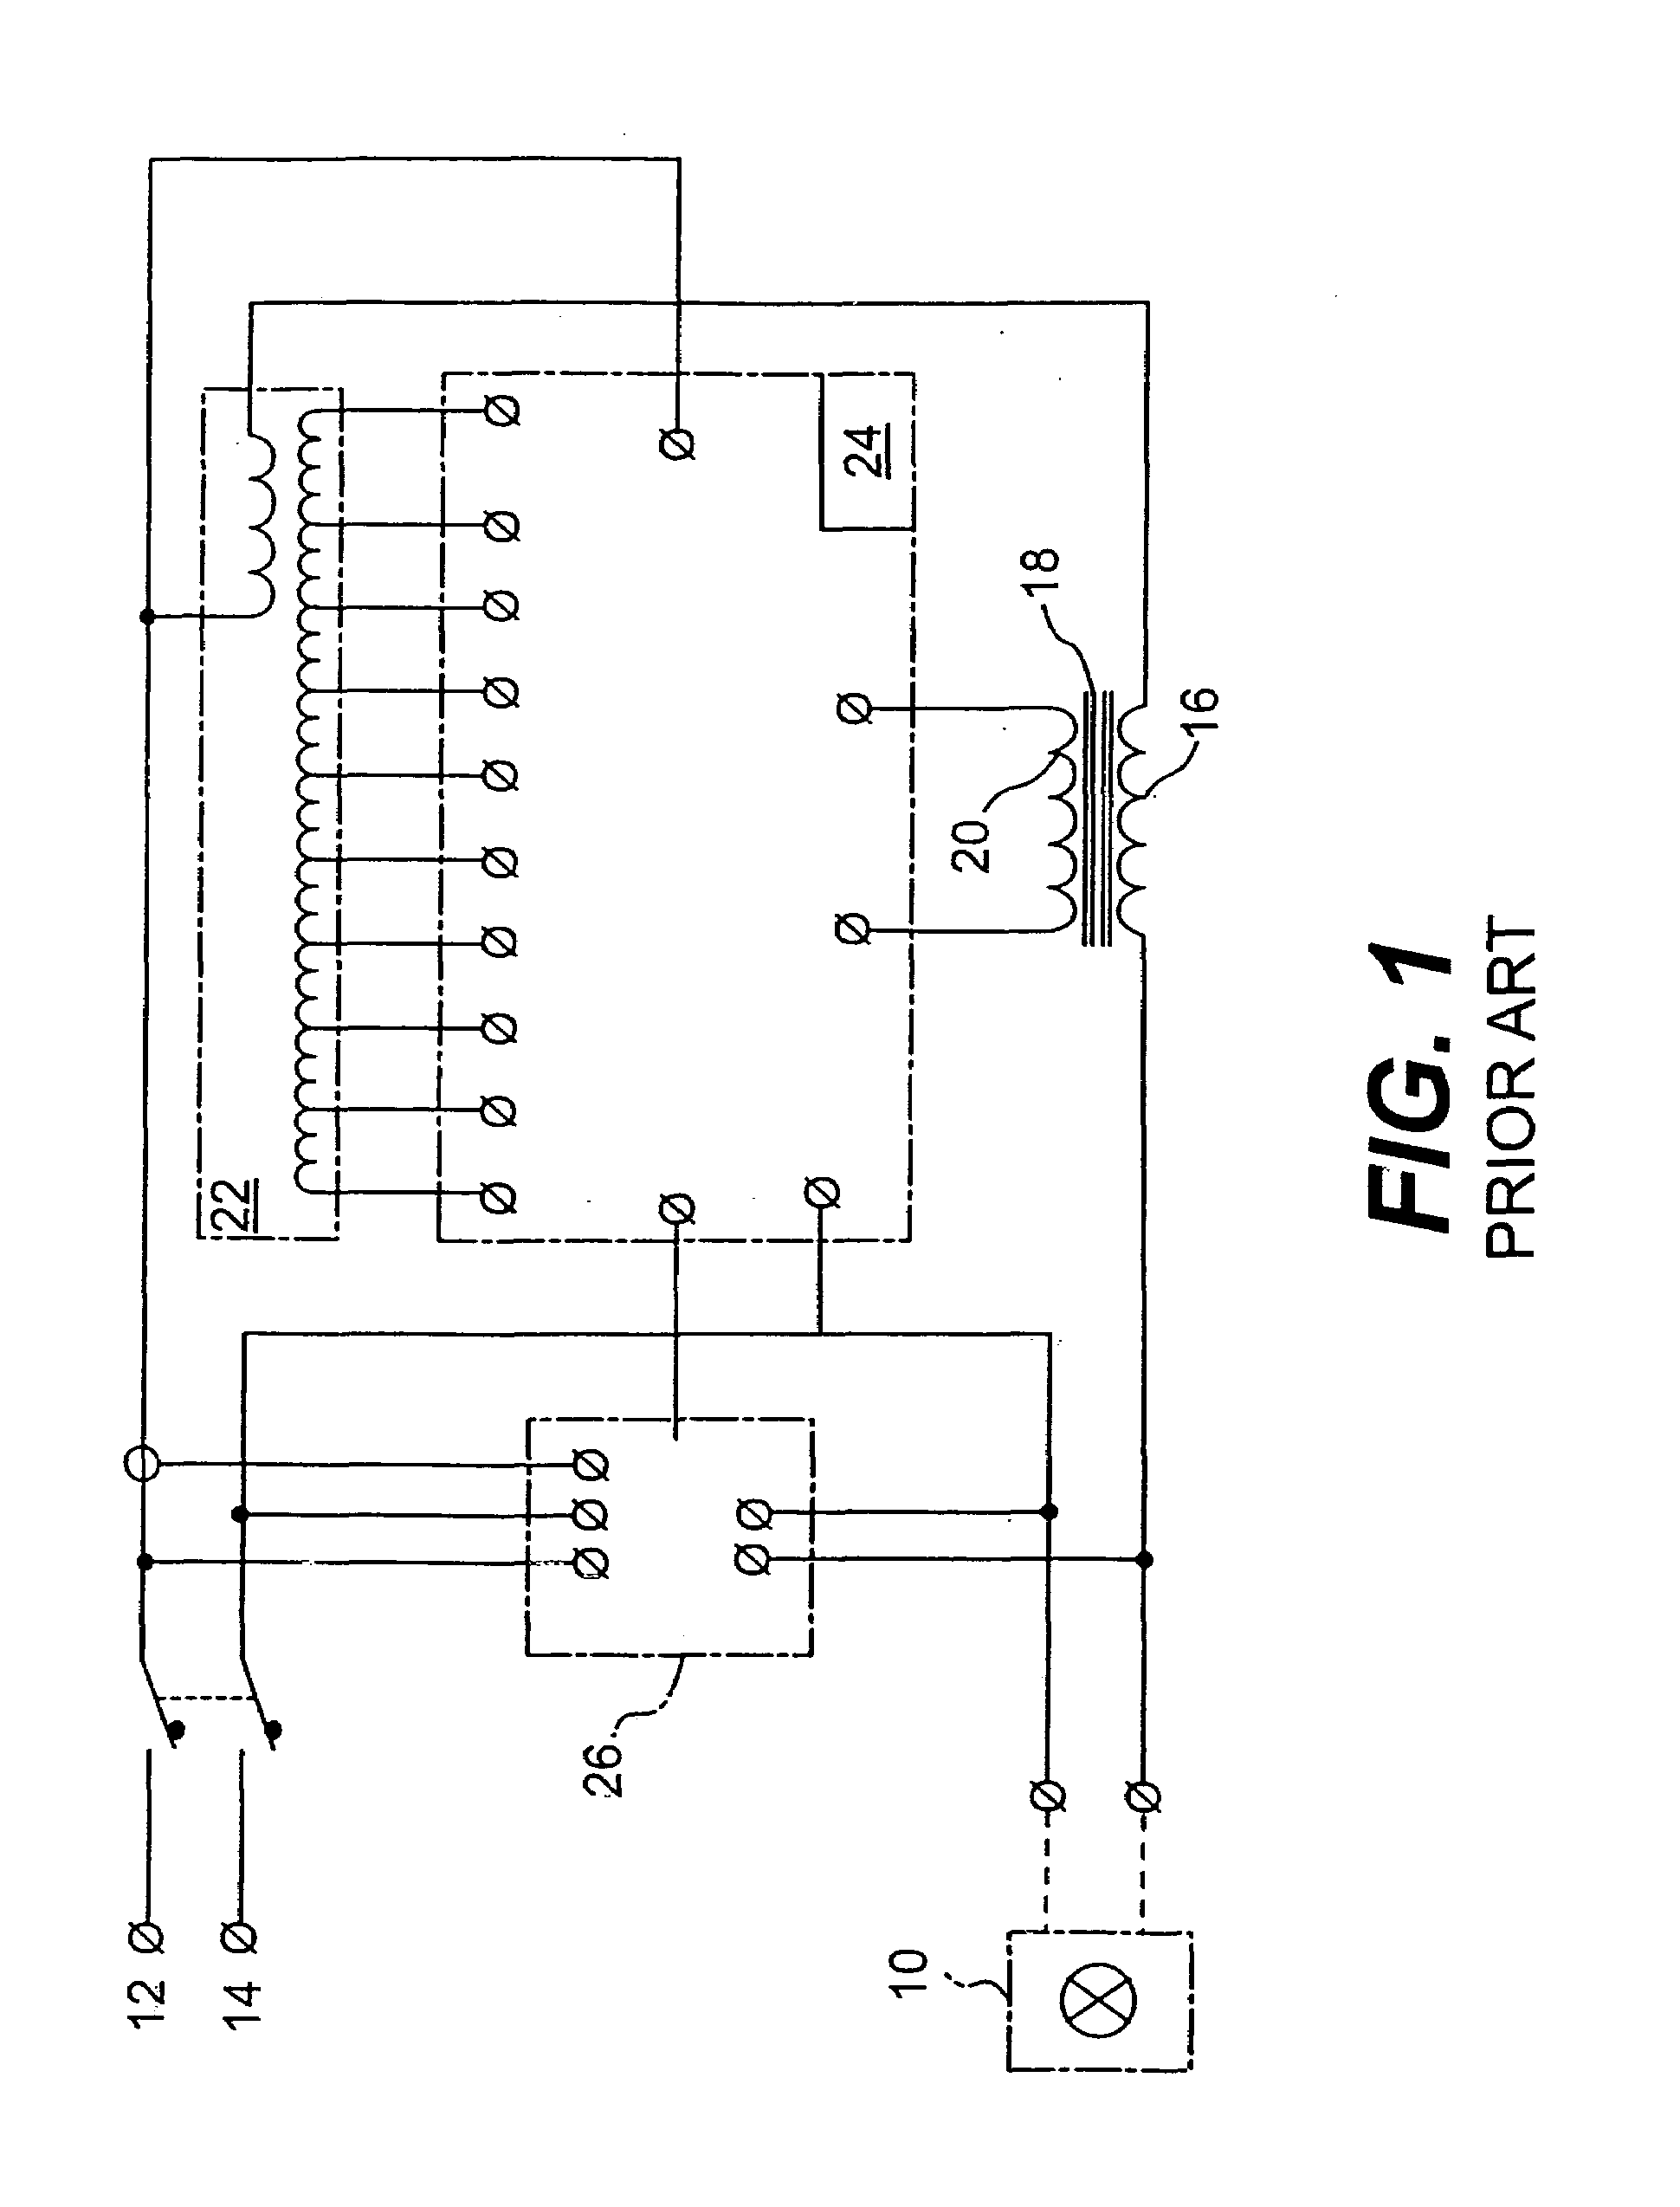 wiring a photocell switch diagram